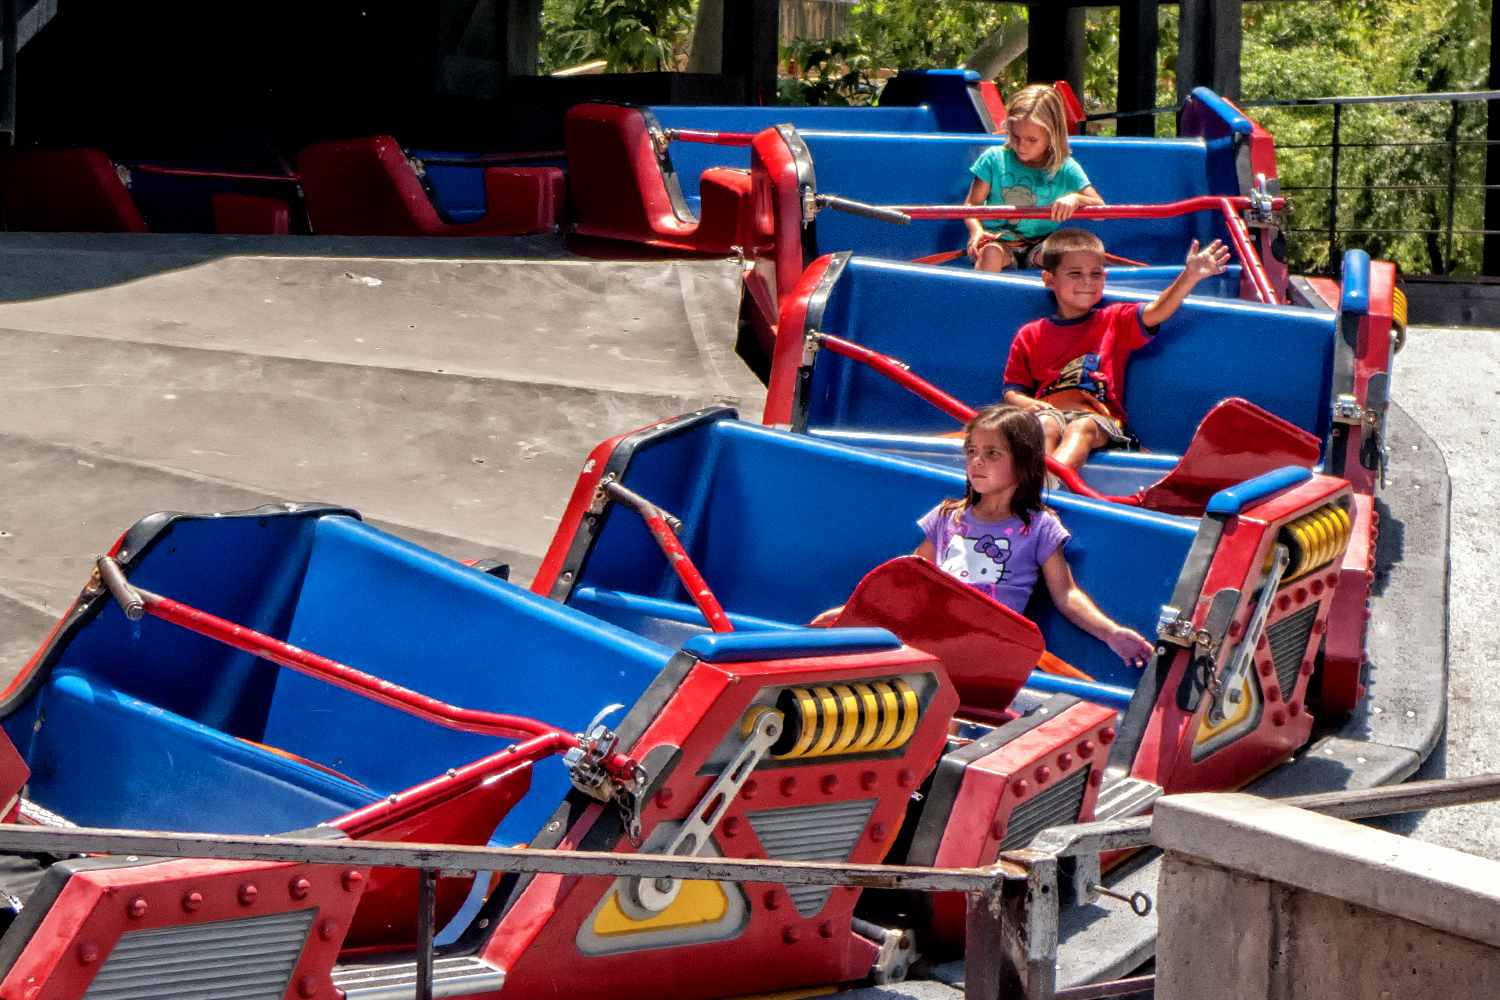 Six Flags Magic Mountain: Things You Need to Know